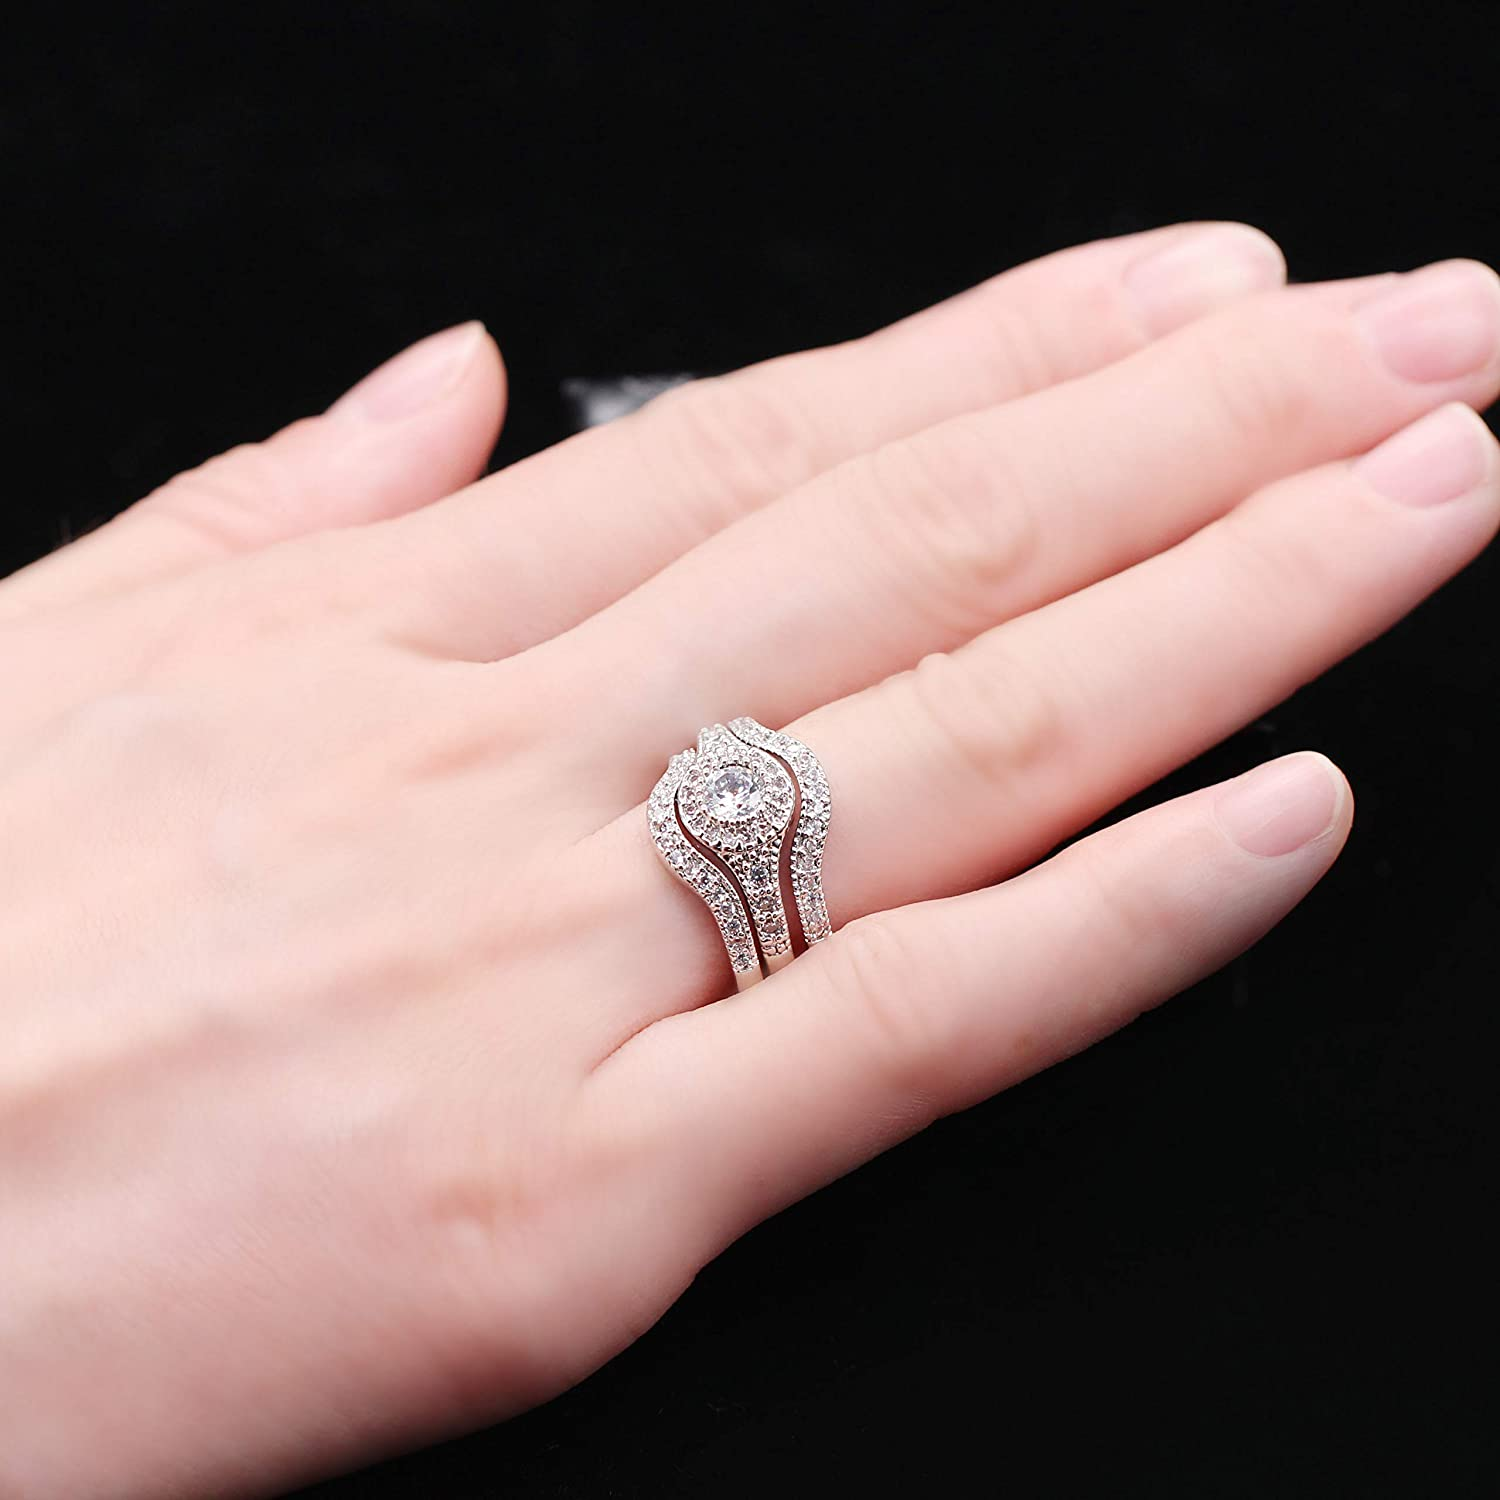 Uloveido 3 Pieces White Gold Plated Diamond Cut Round Cubic Zirconia Halo Engagement Wedding Stackable Rings Set for Women Girls RA0346 Size L O Q S T